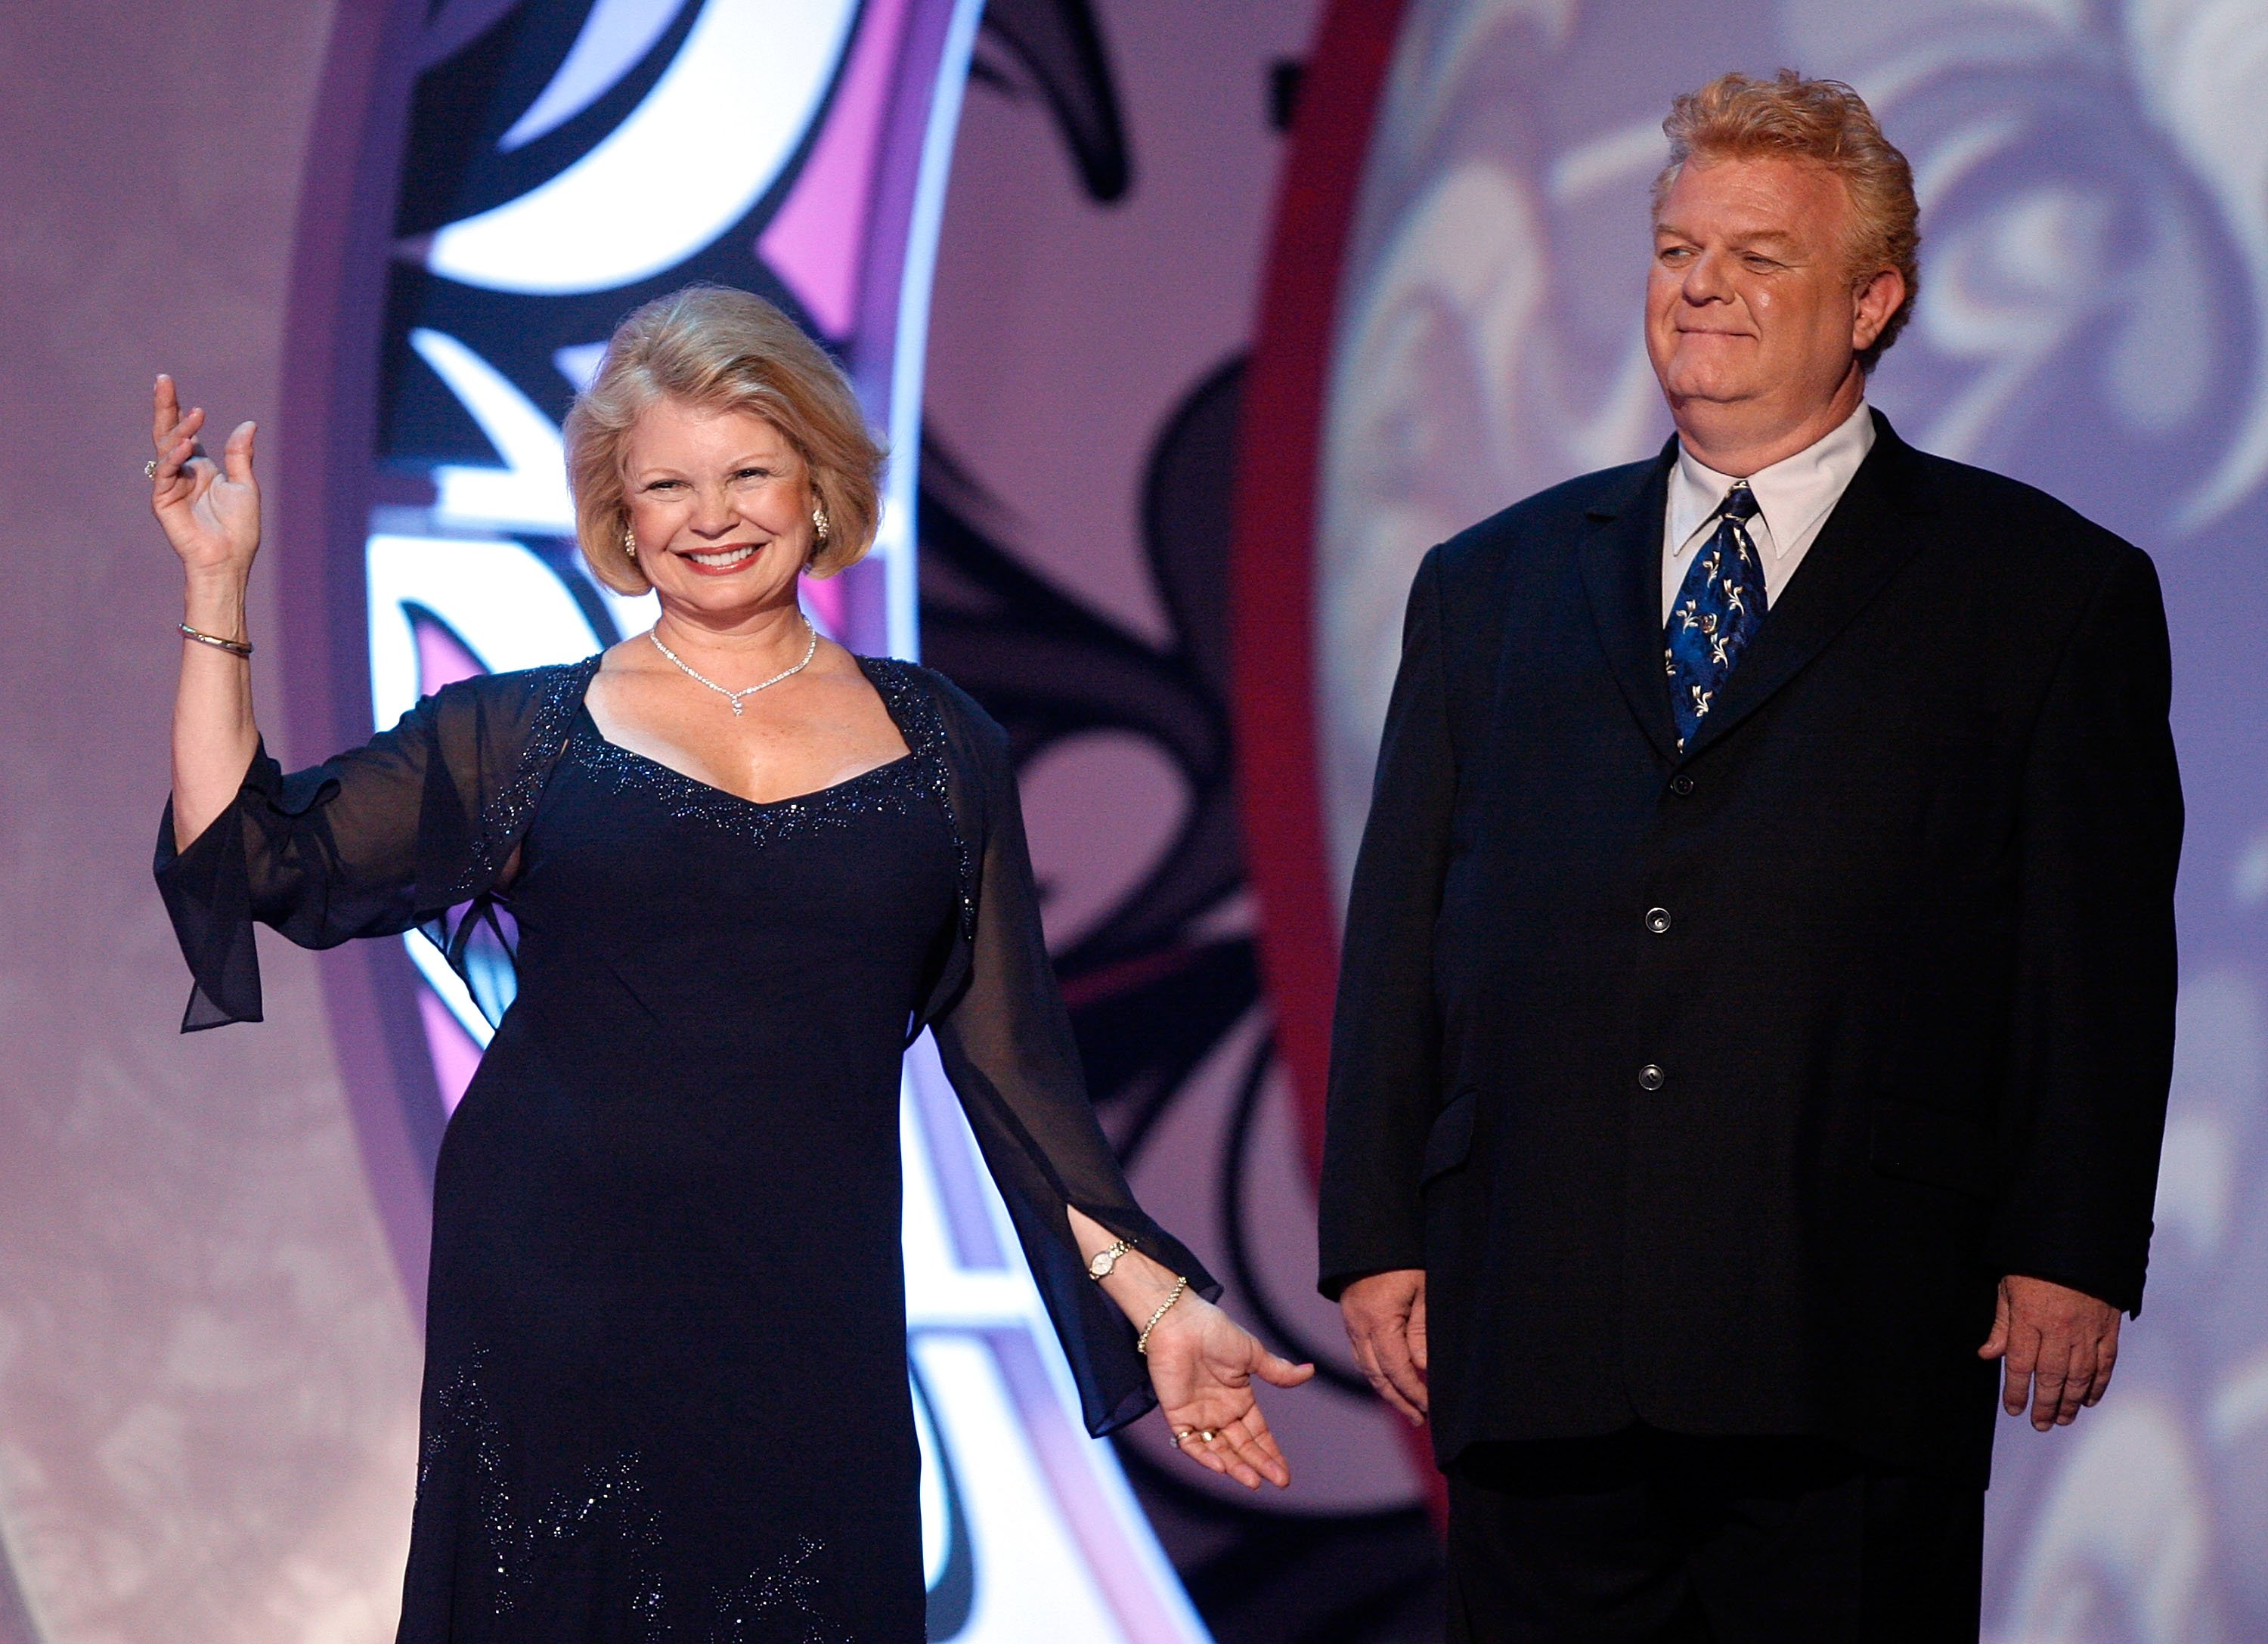 Kathy Garver and Johnny Whitaker at the 5th Annual TV Land Awards on April 14, 2007 | Photo: GettyImages